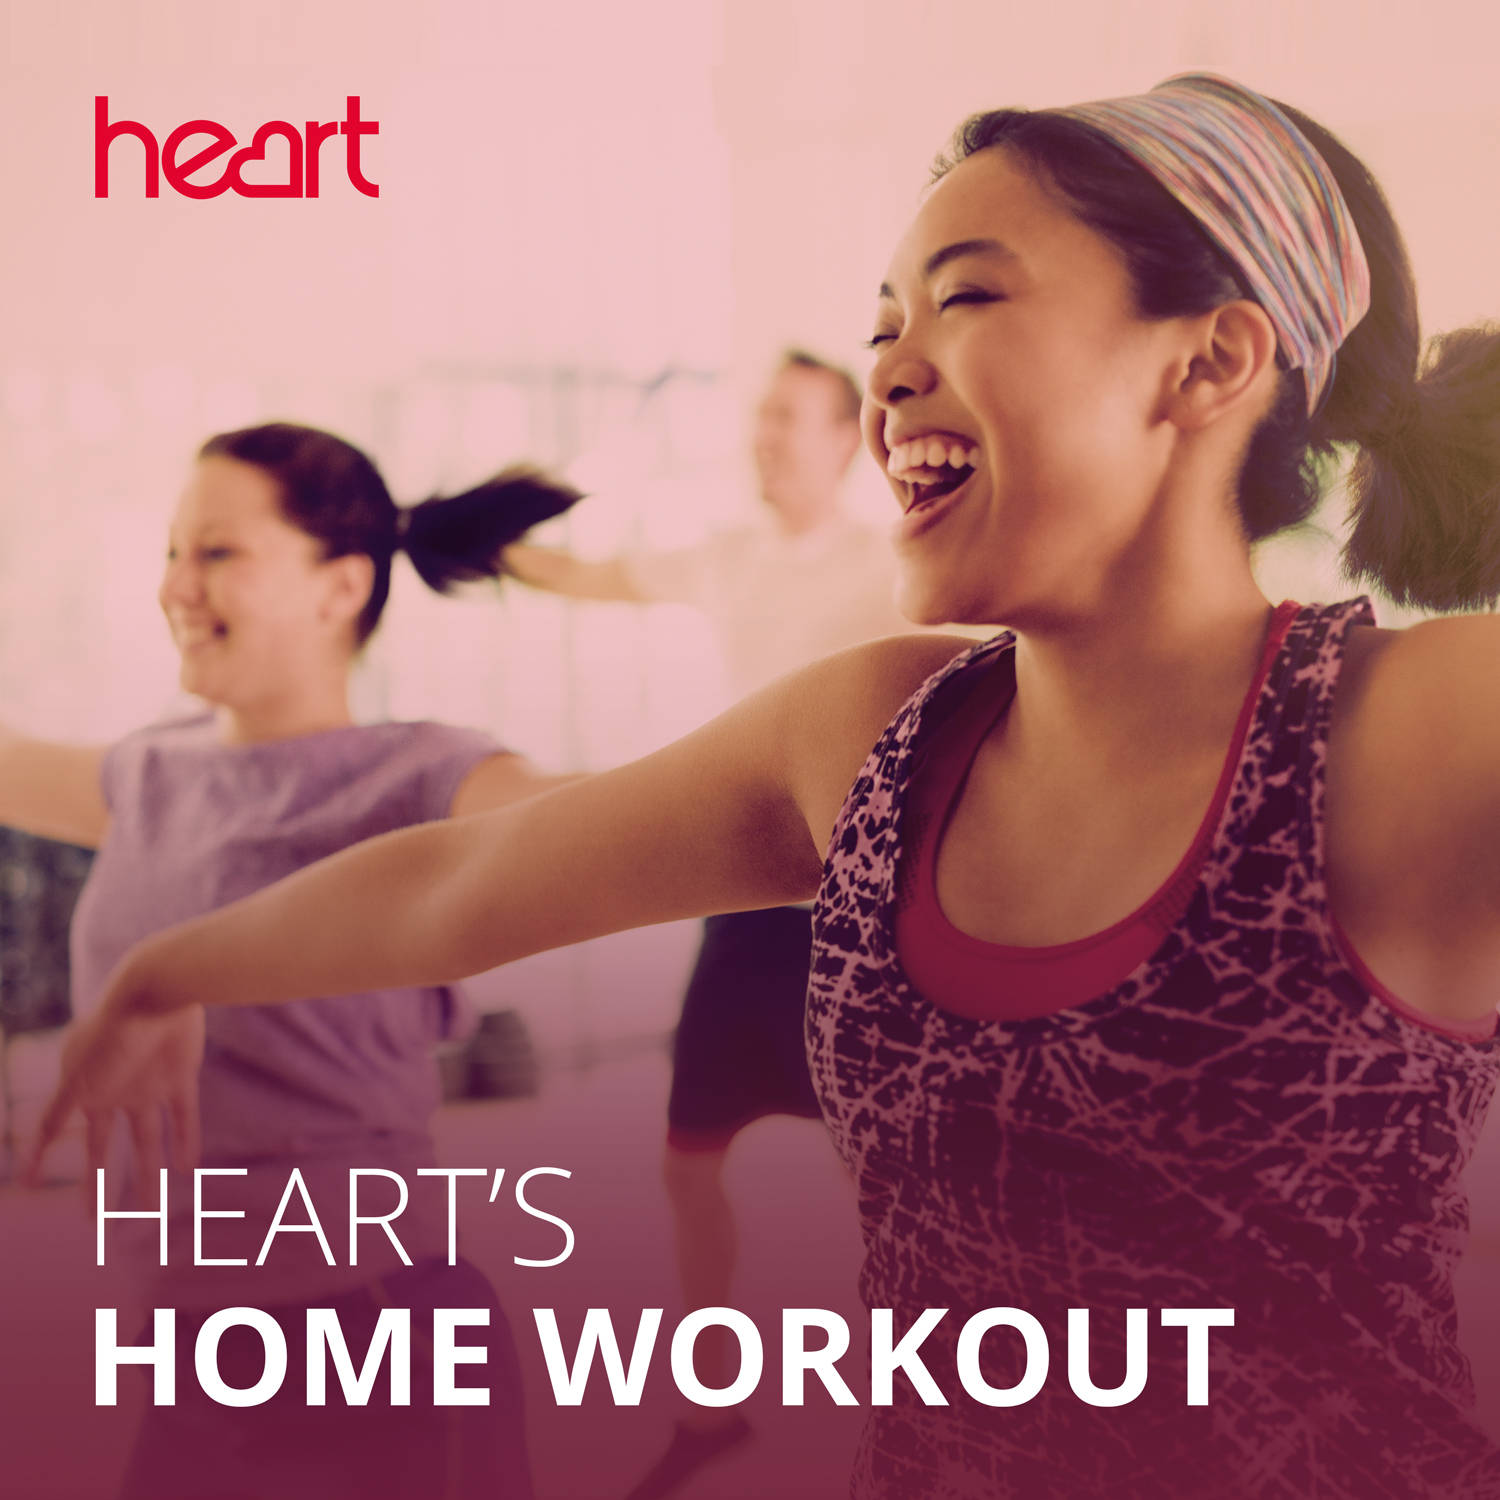 Heart Workout image